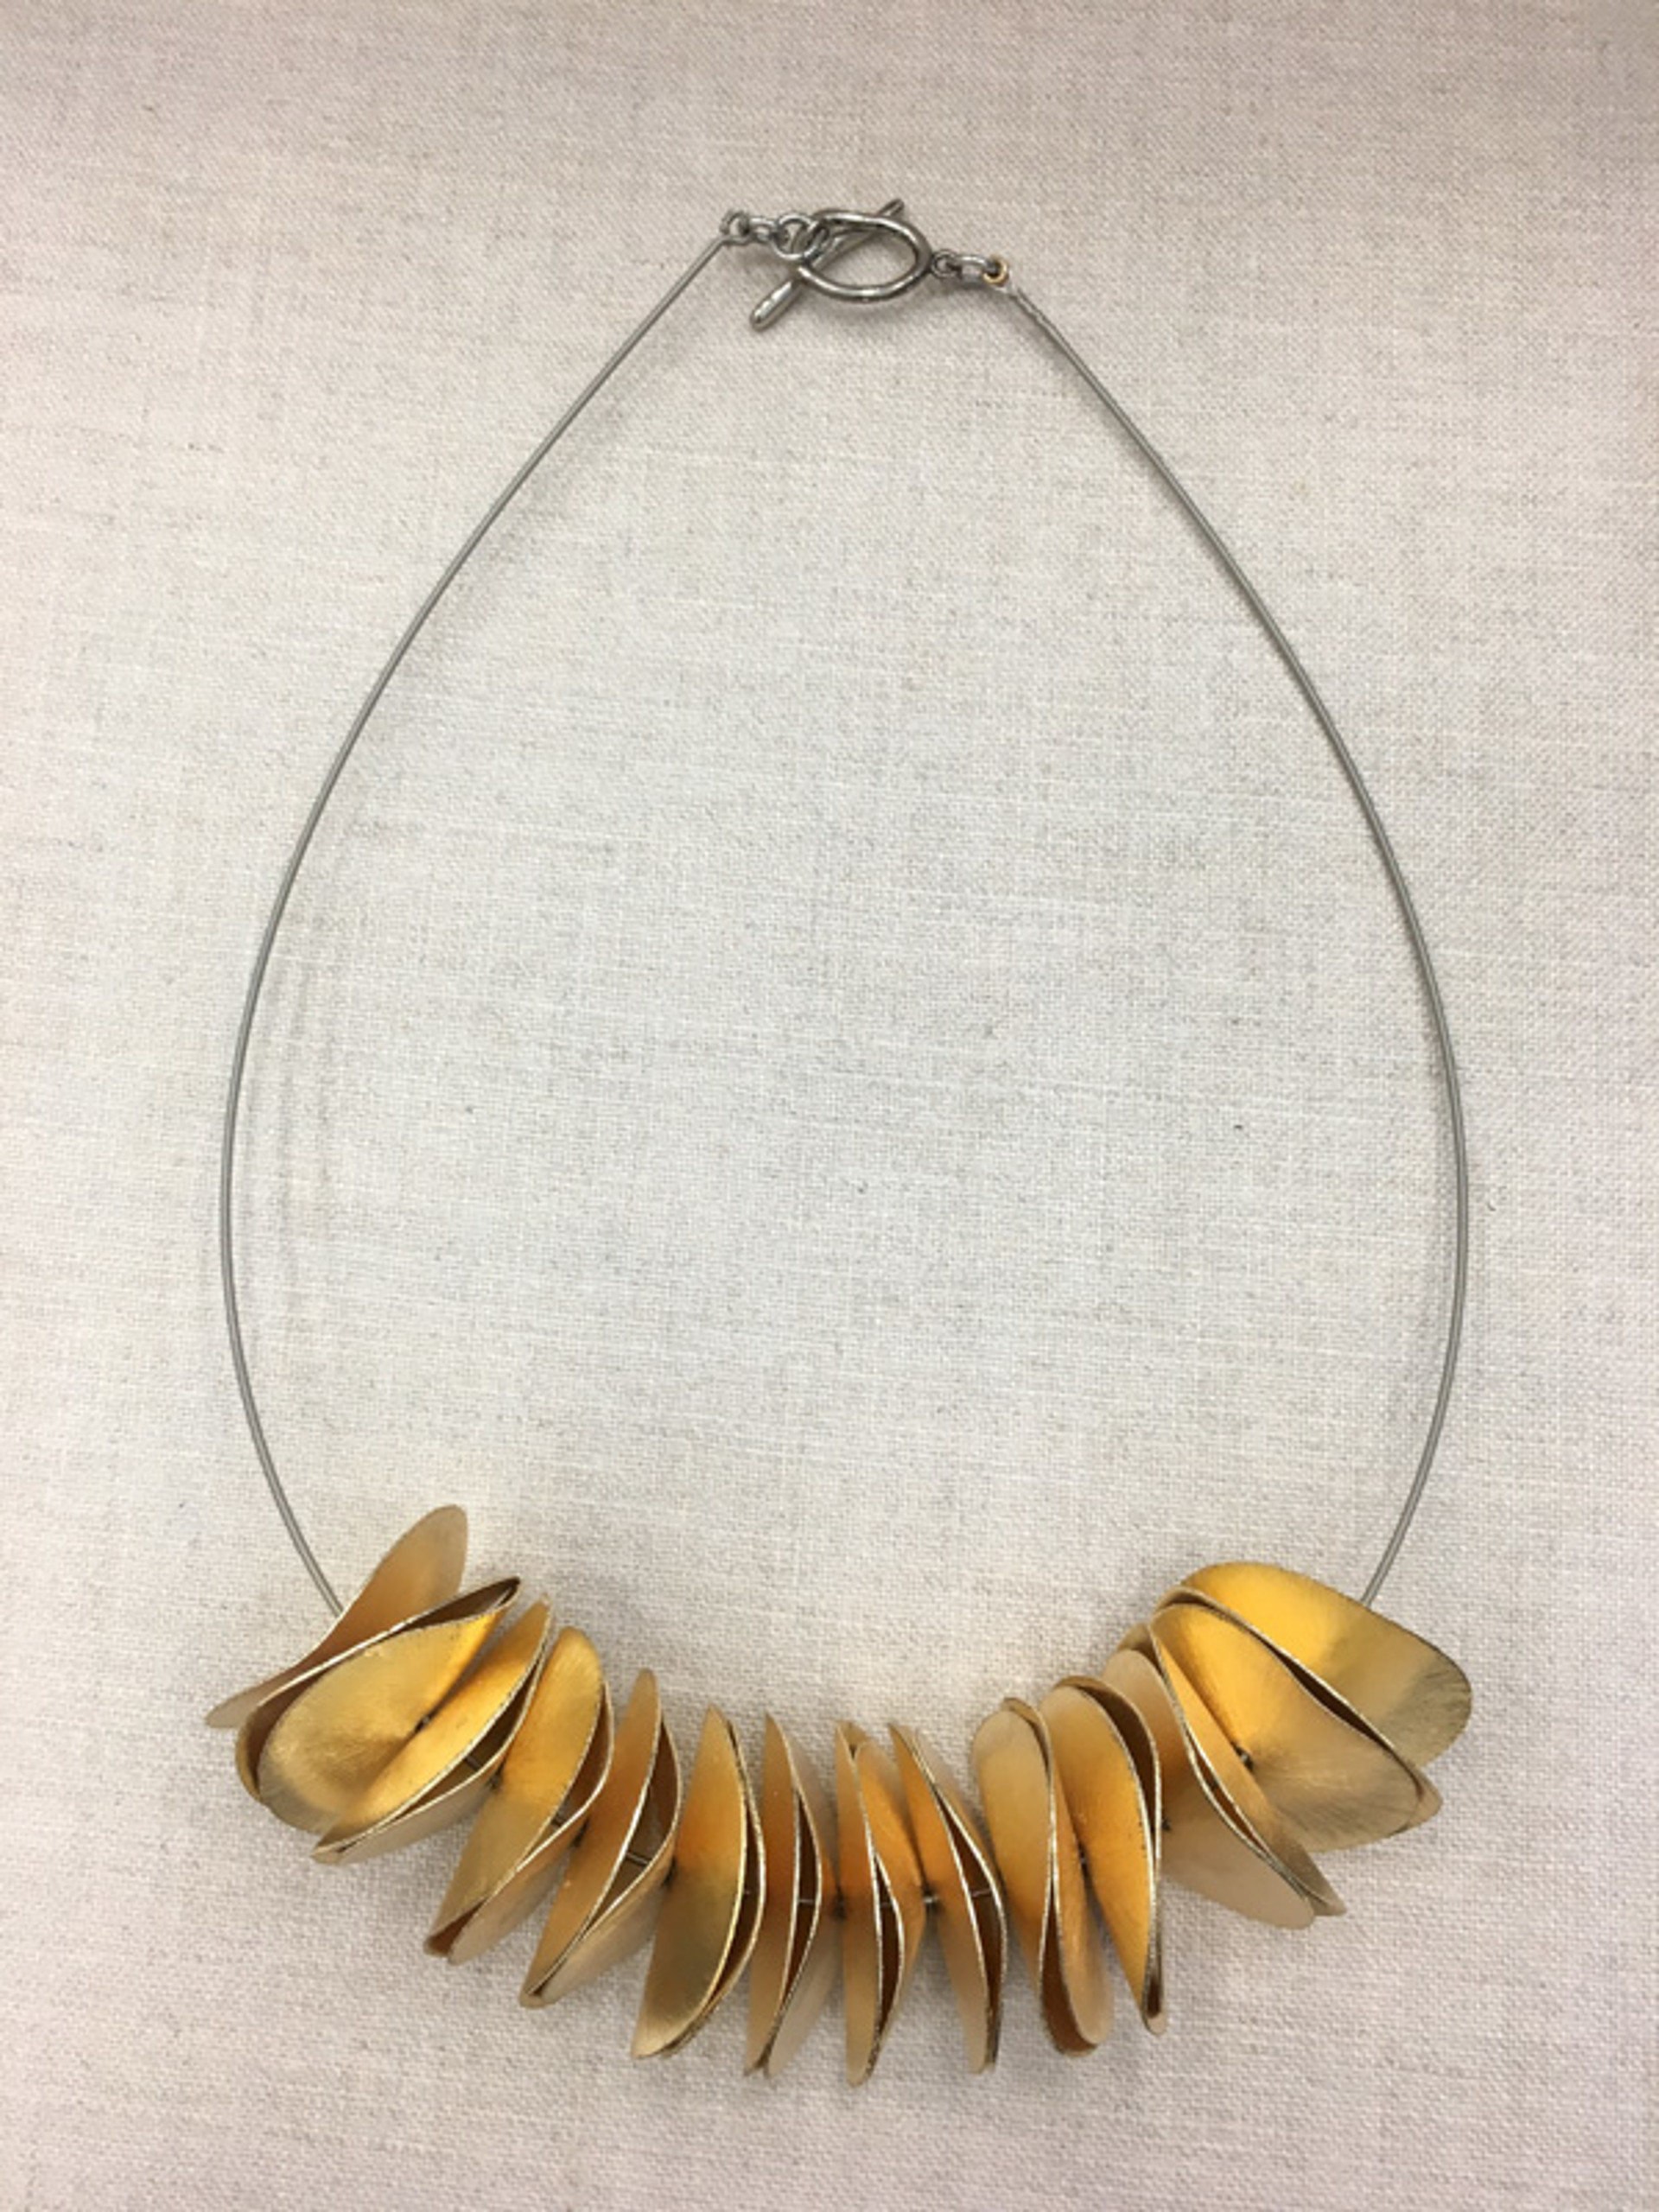 8403 Necklace by Lori Paulsen